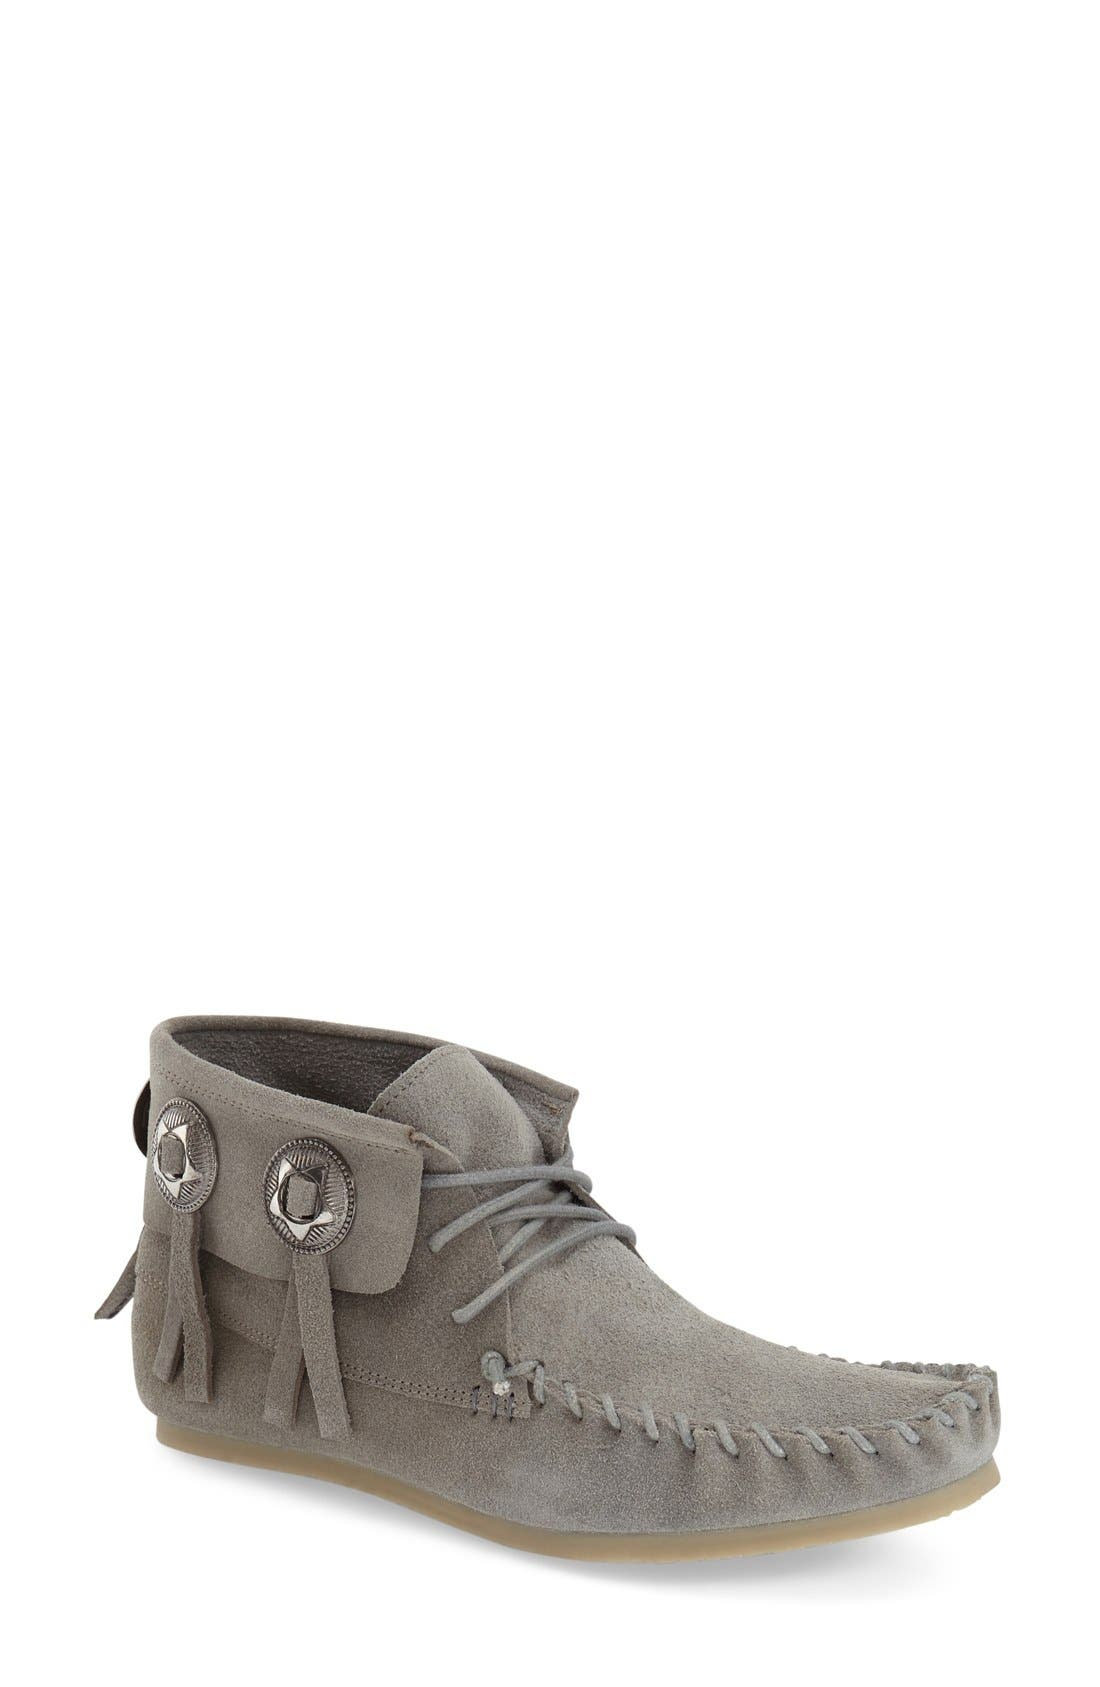 COCONUTS BY MATISSE 'Travis' Moccasin Bootie, Main, color, 029